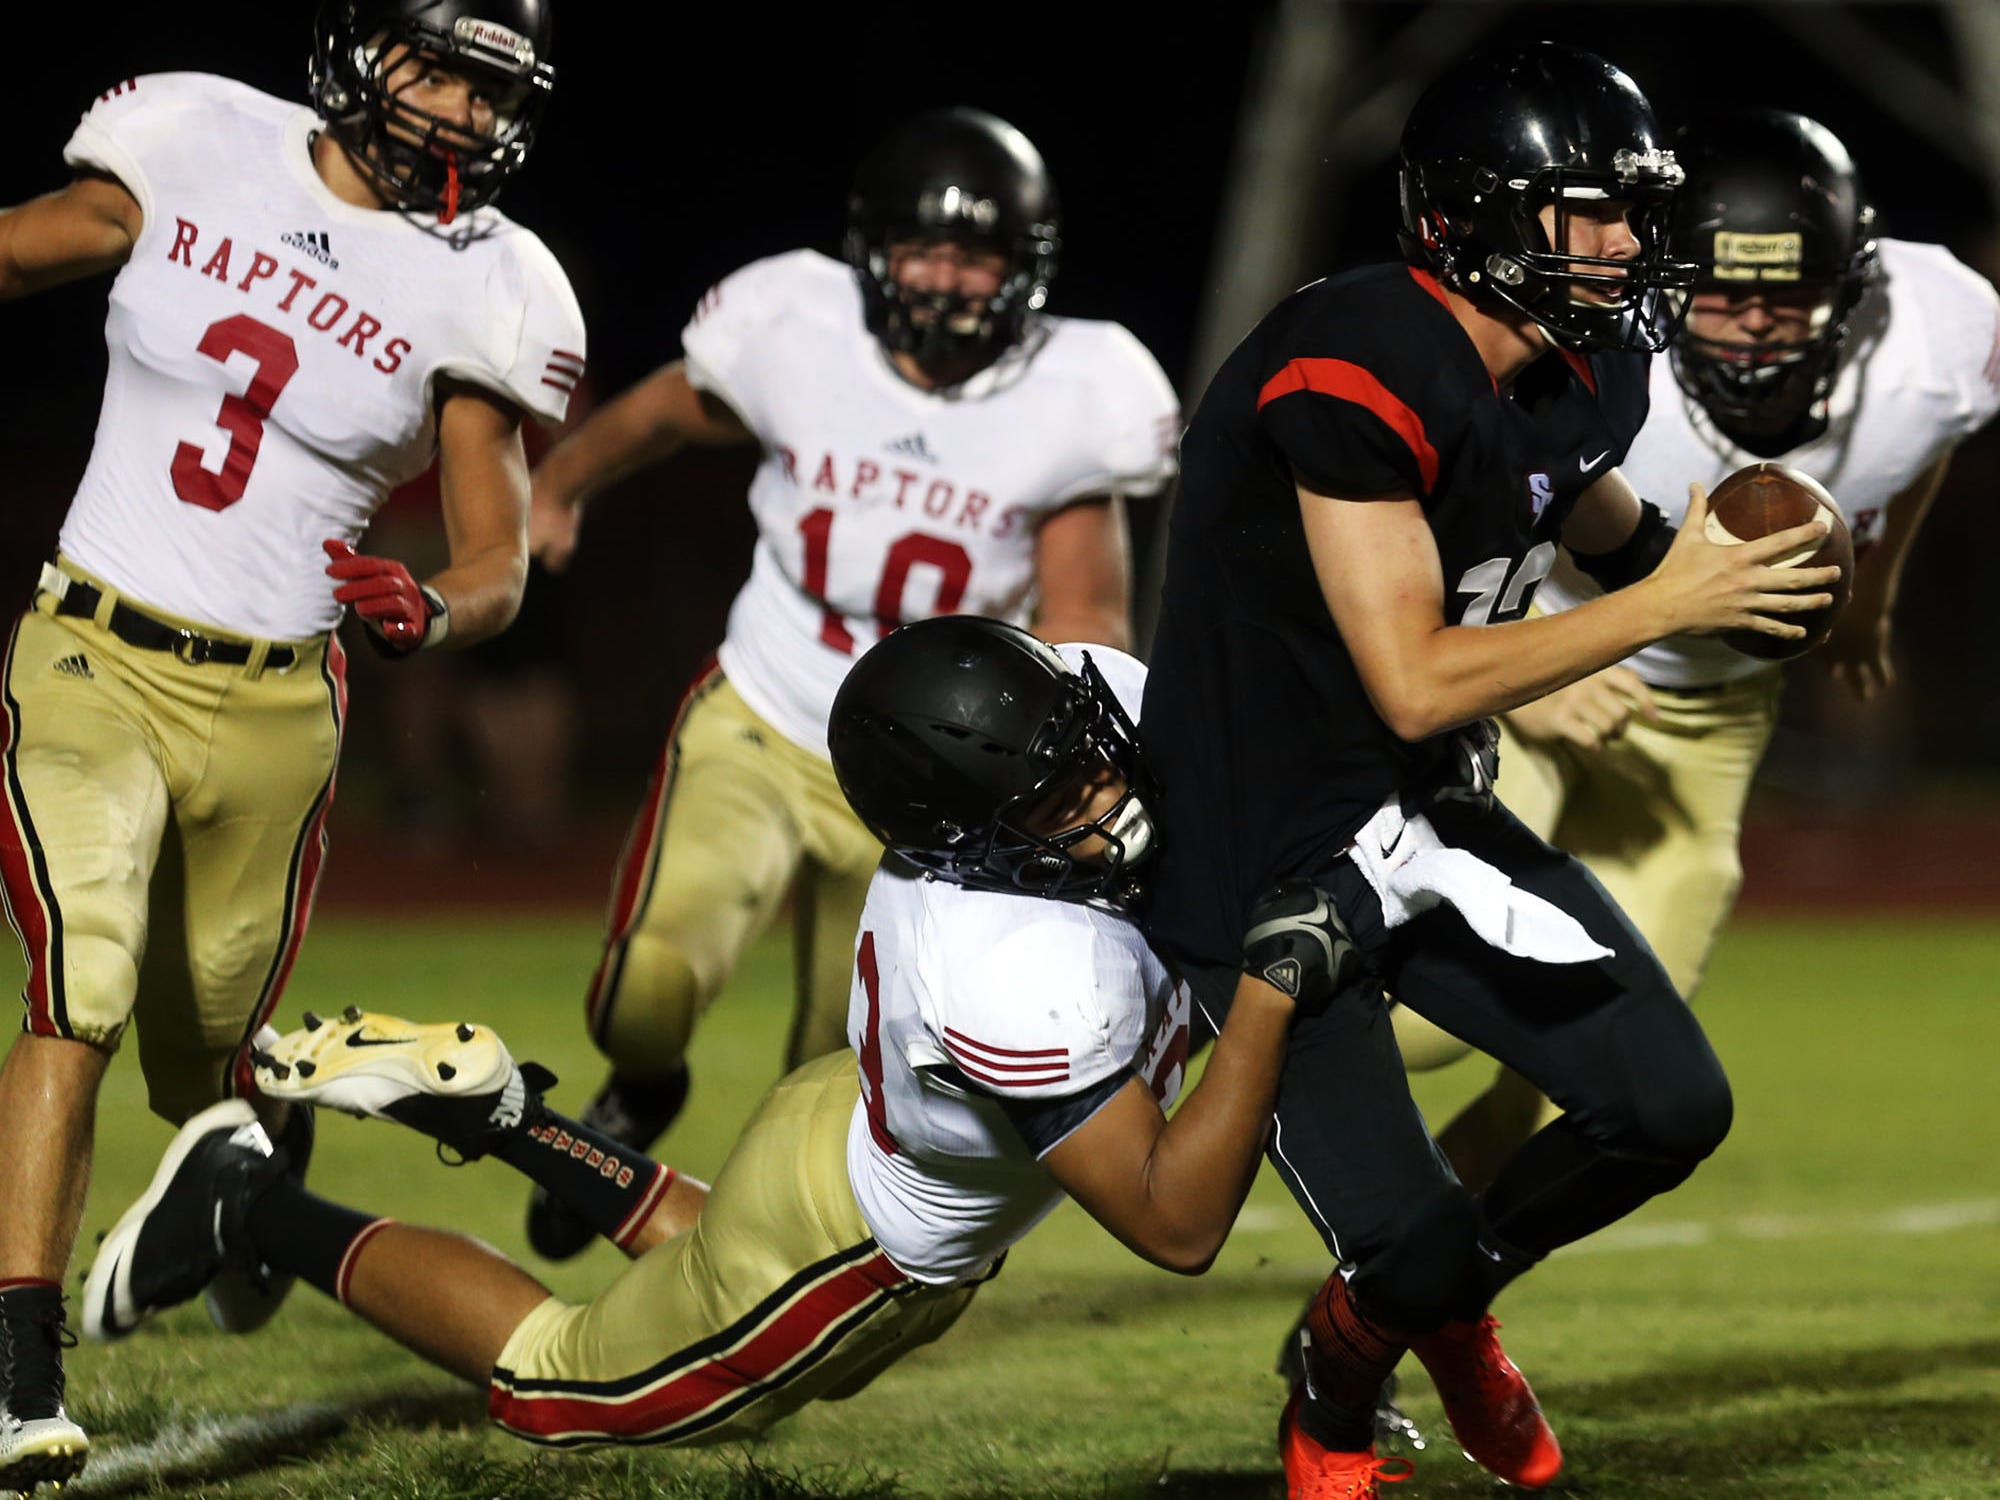 Stewarts Creek quarterback Mason Hall is sacked by Ravenwood's Bryan McKay in the second quarter Friday, August 22, 2014 at Stewarts Creek.